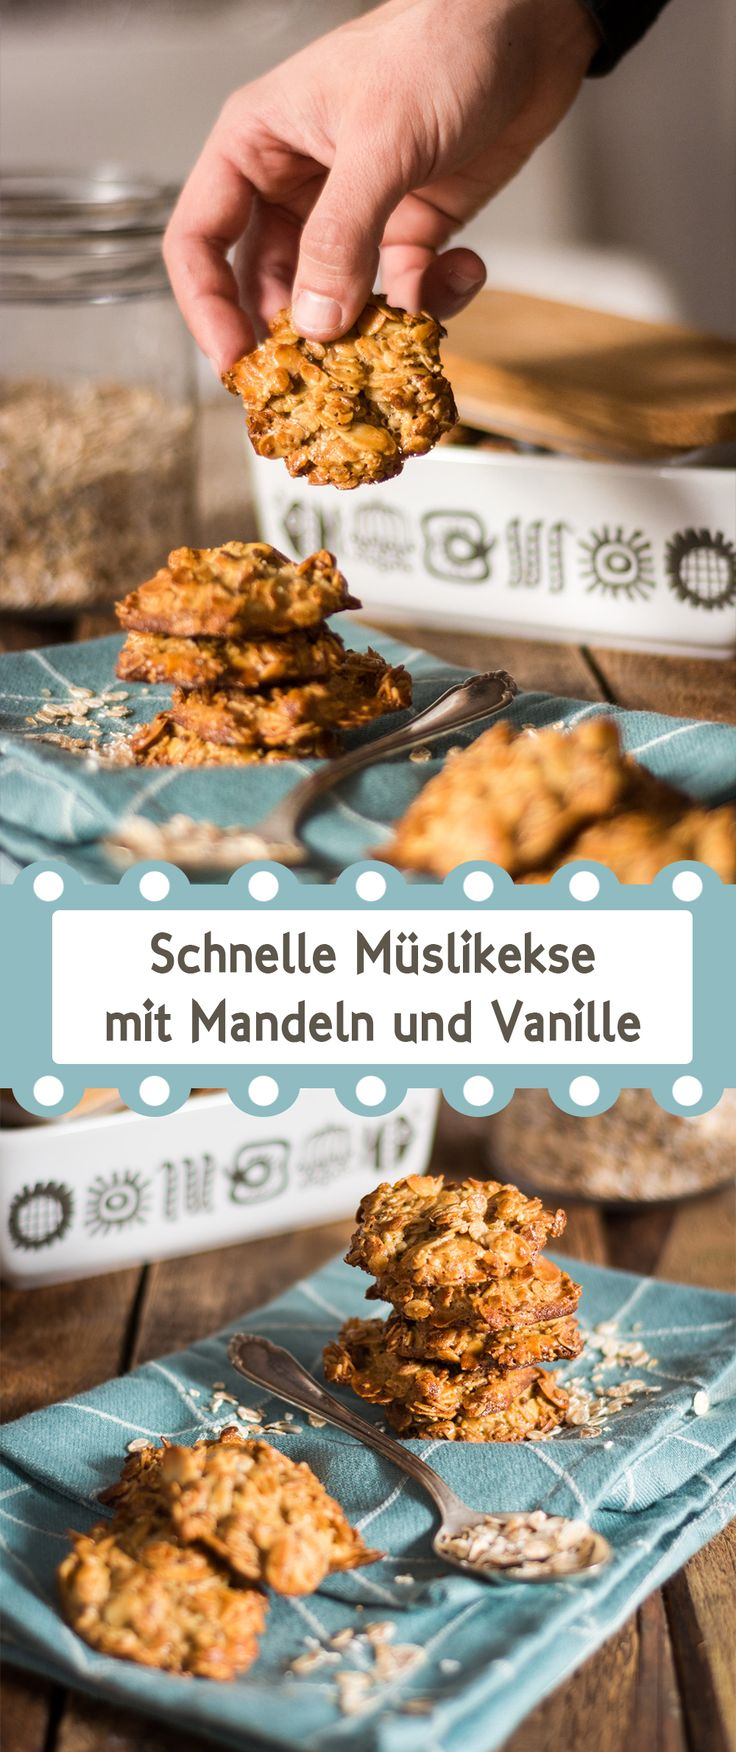 Easy peasy cereal cookies with almonds and cinnamon /// Schnelle Müslikekse mit Madeln, Zimt und Vanille